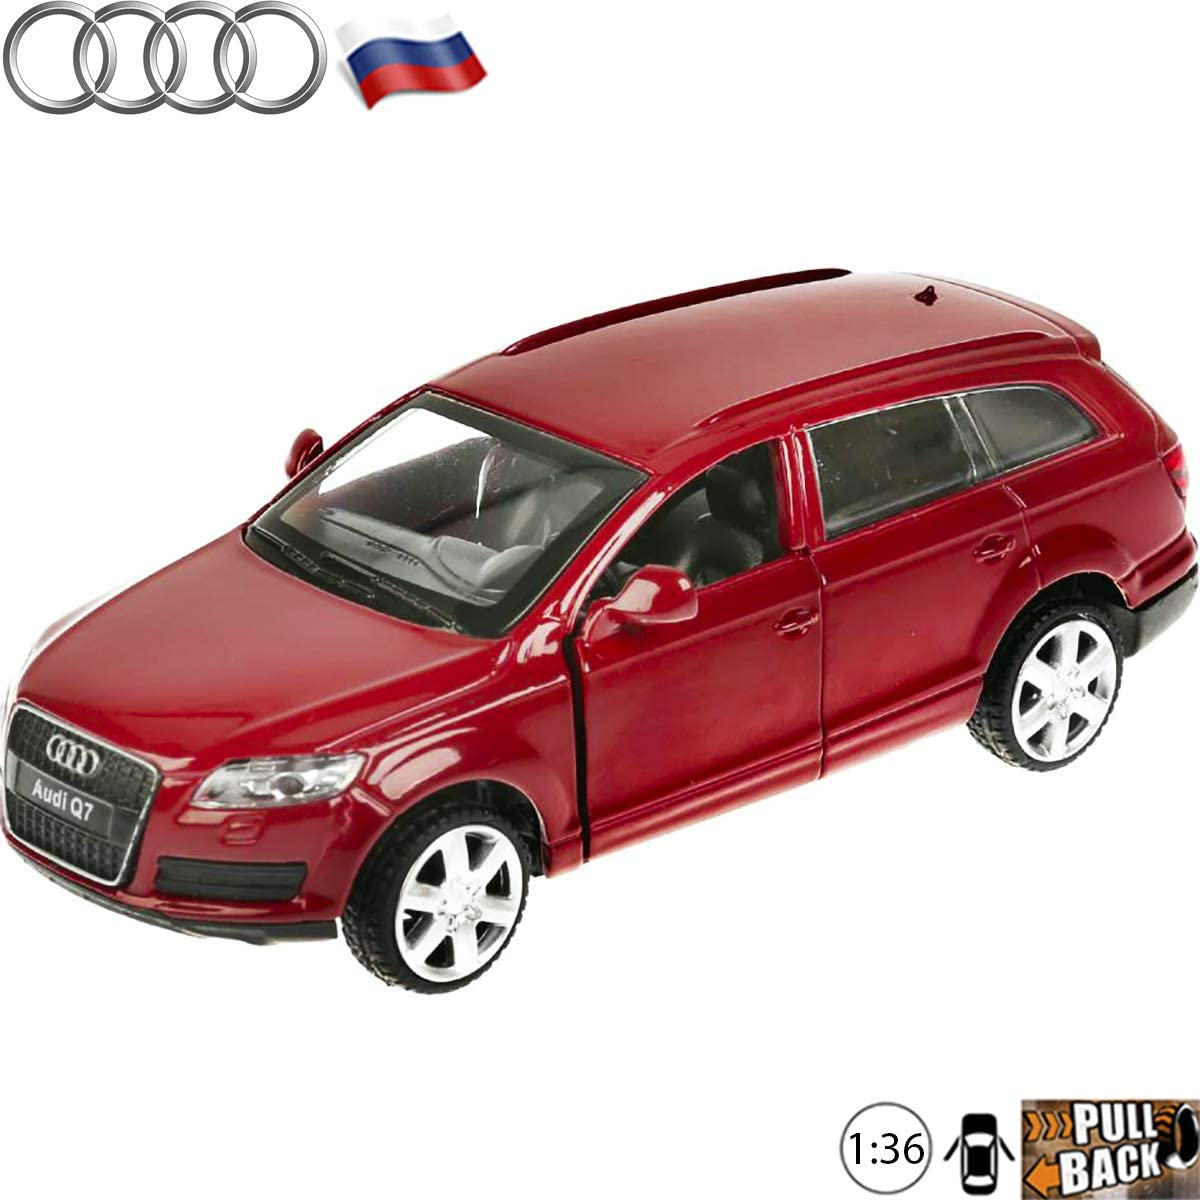 1:36 Scale Diecast Car Audi Q7 Red Pre-Facelift Sport Utility Vehicle - Russian Collectible Model Toy Cars